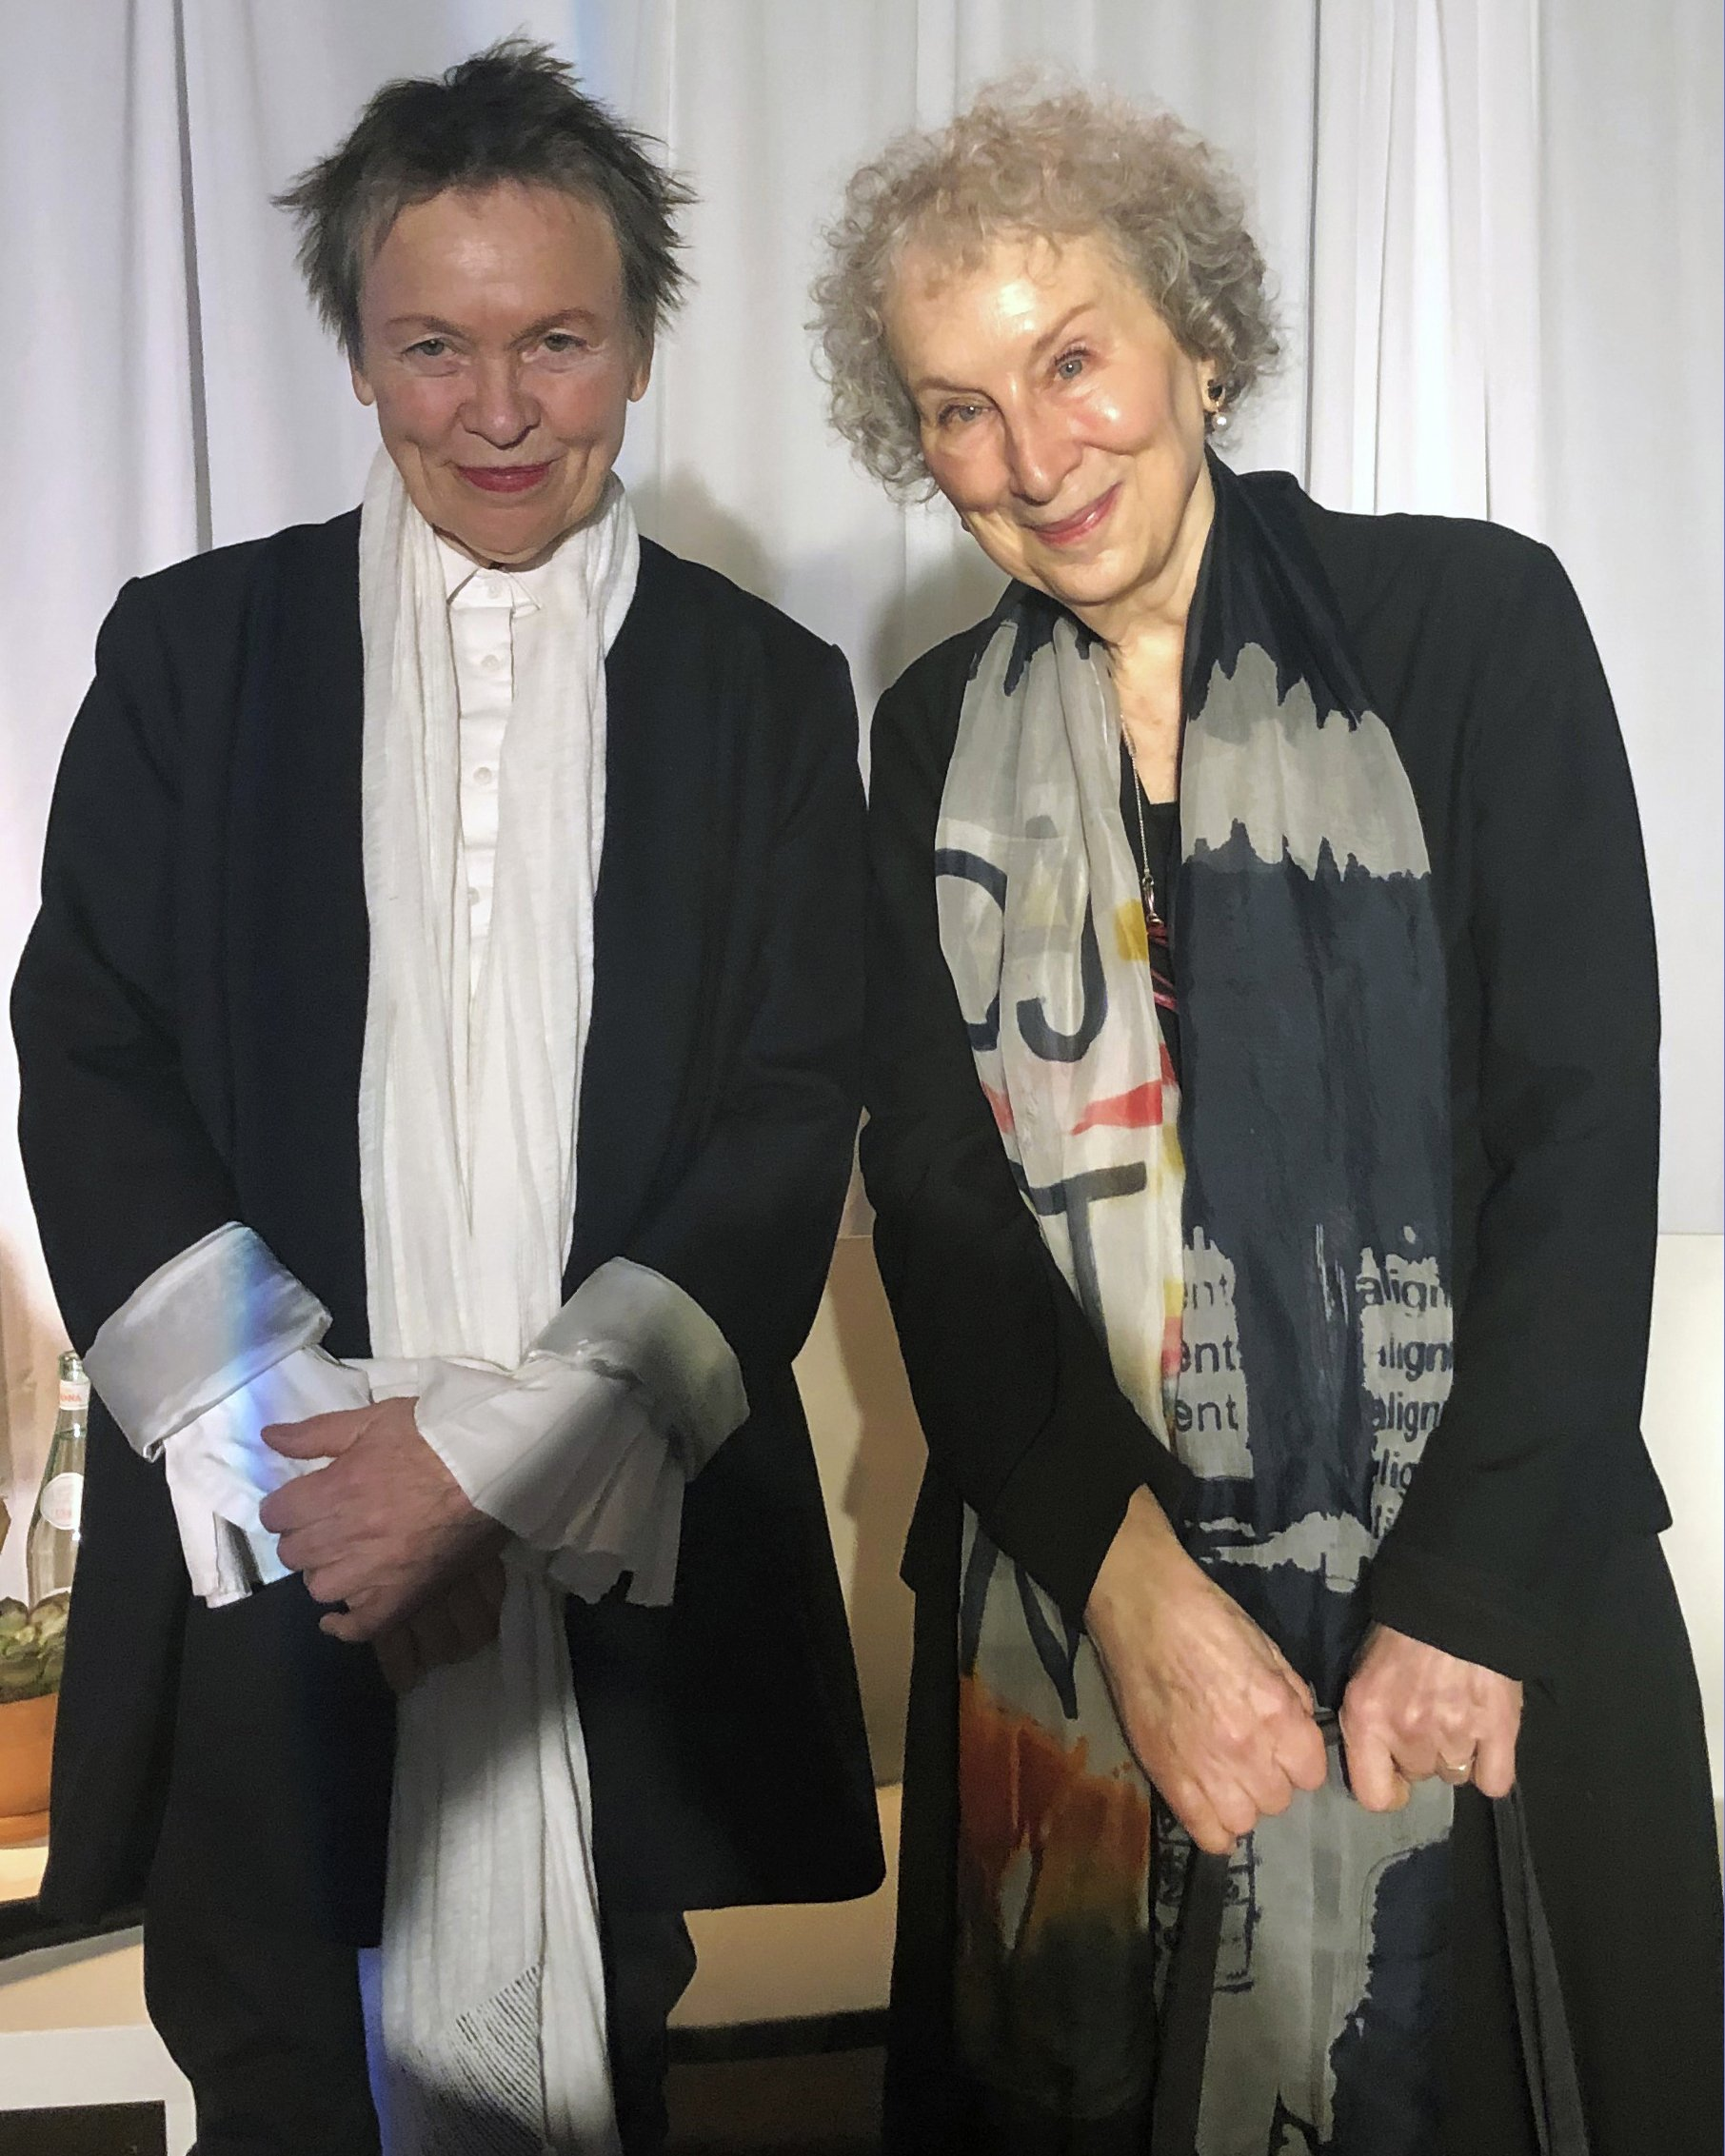 Margaret Atwood and Laurie Anderson talk art, age and more